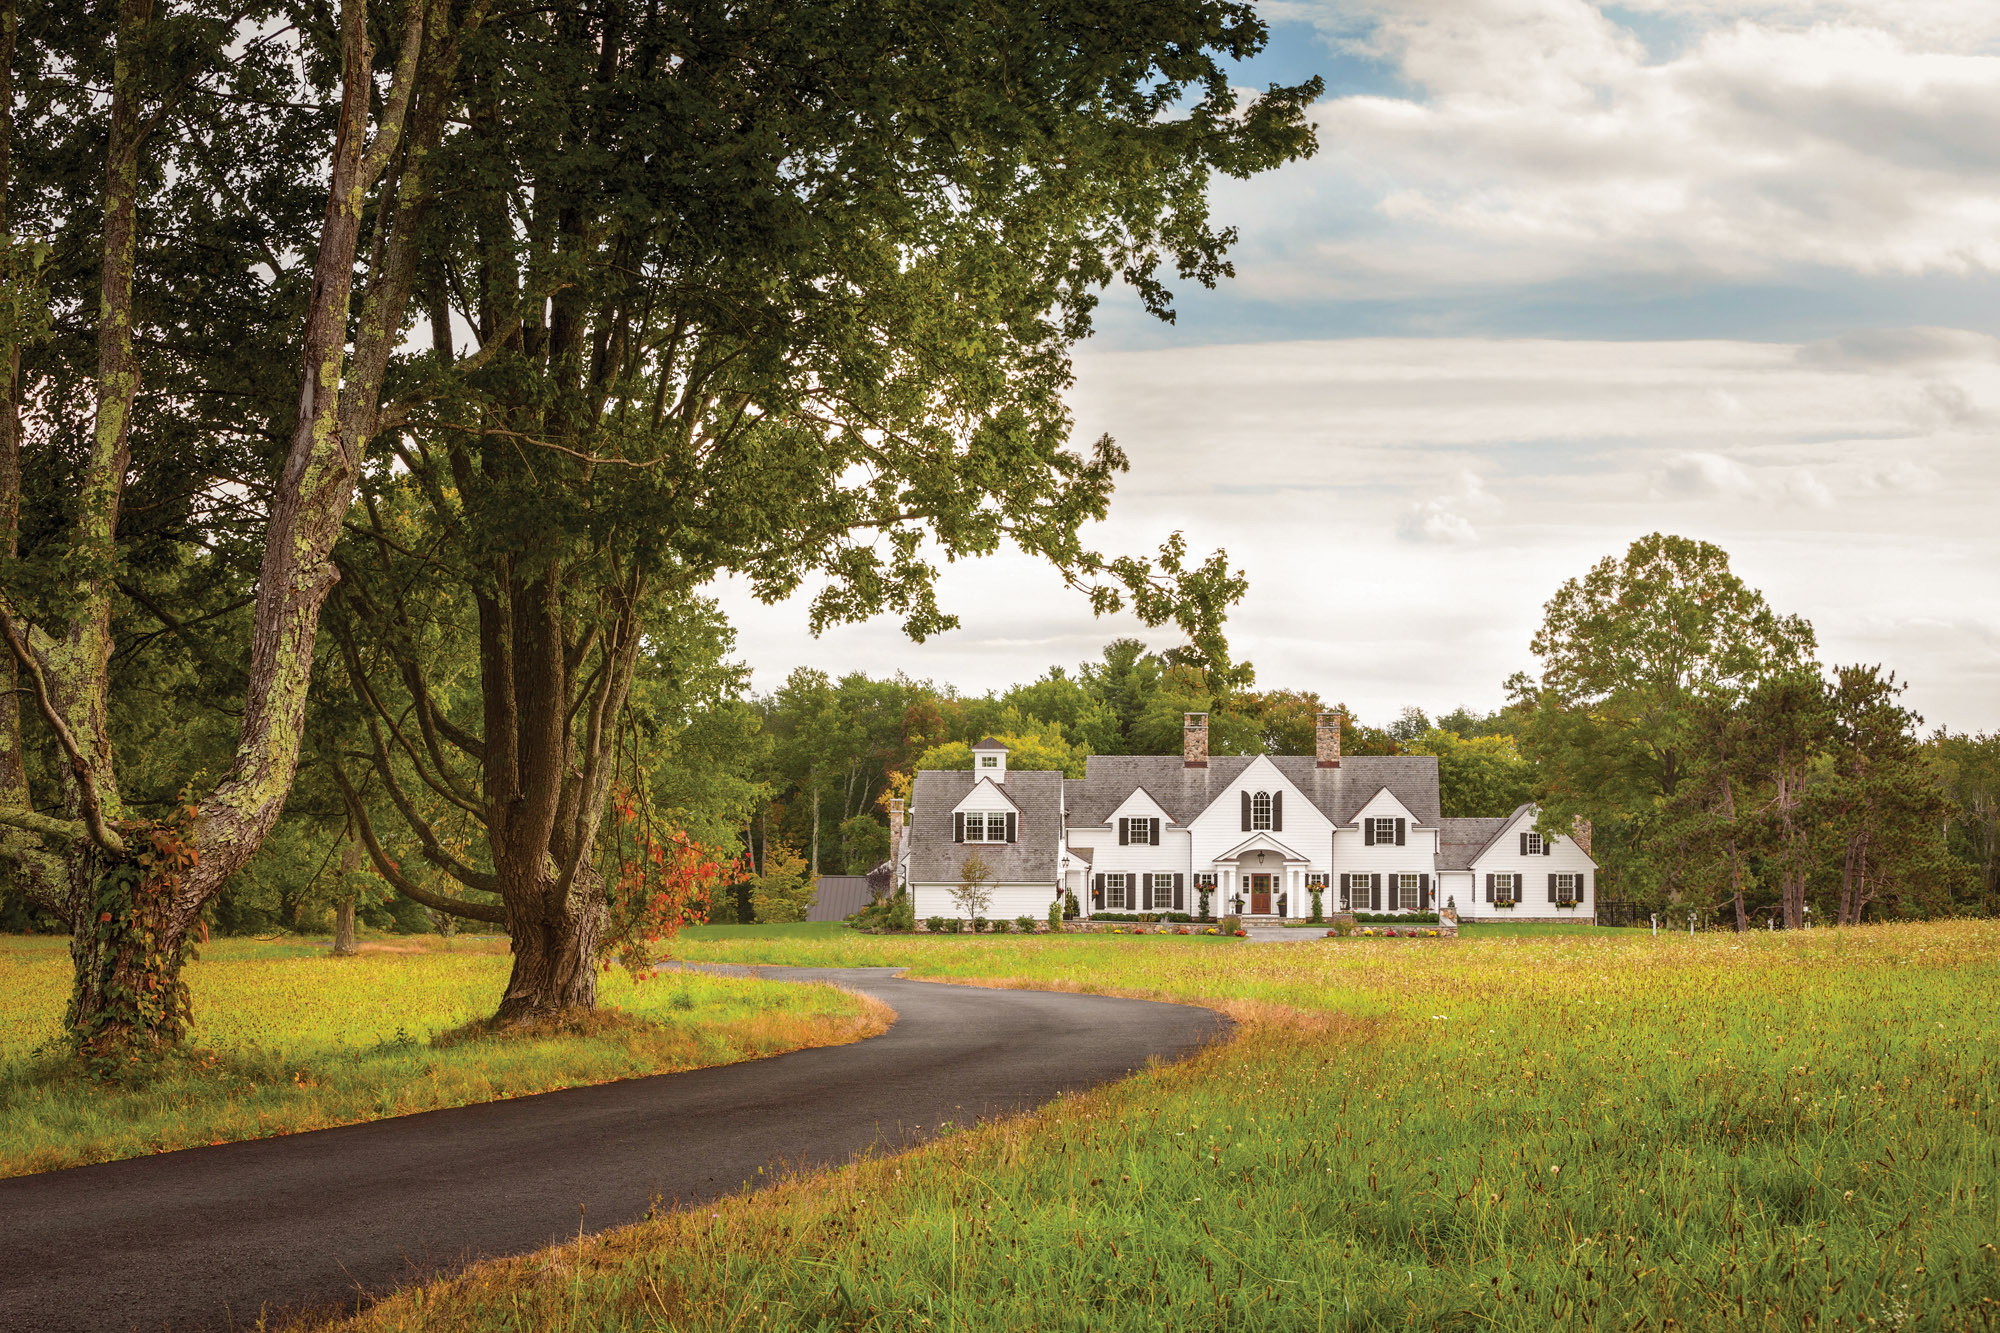 New England Colonial Revival Farmhouse